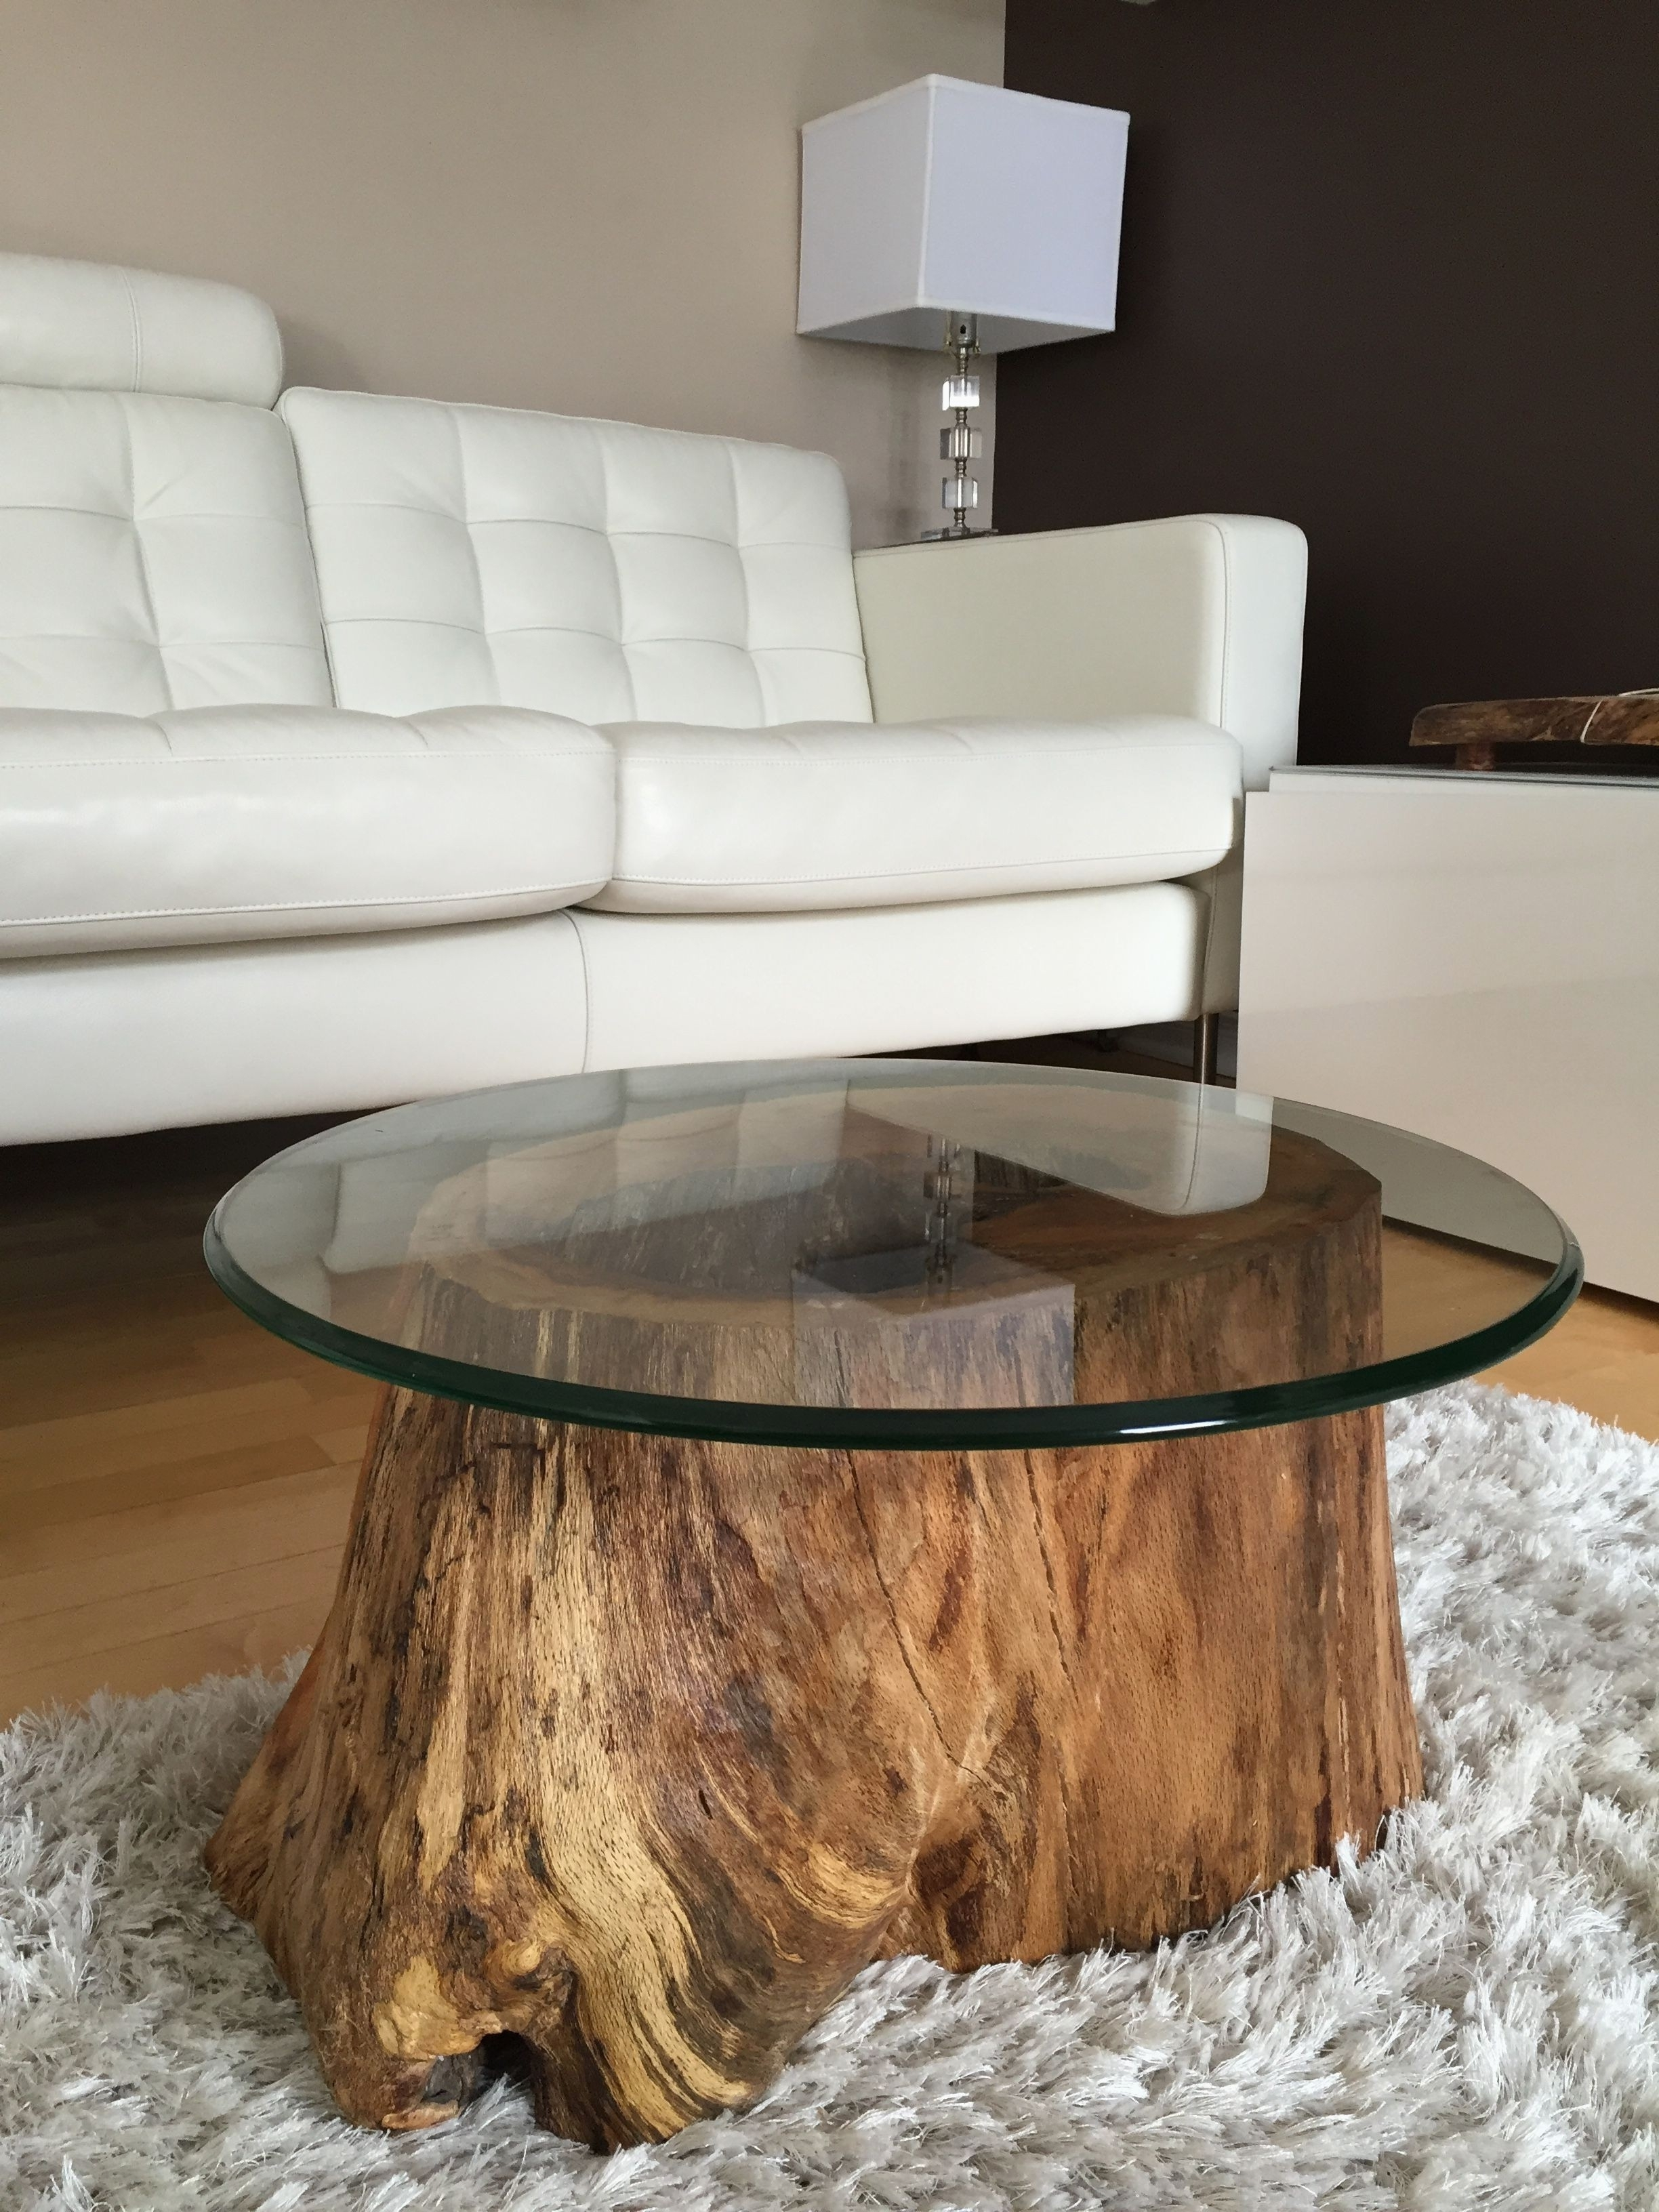 2017 Round Carved Wood Coffee Tables With Regard To Round Carved Wood Coffee Table Advanced Coffee Tables 23 Pinterest (View 1 of 20)